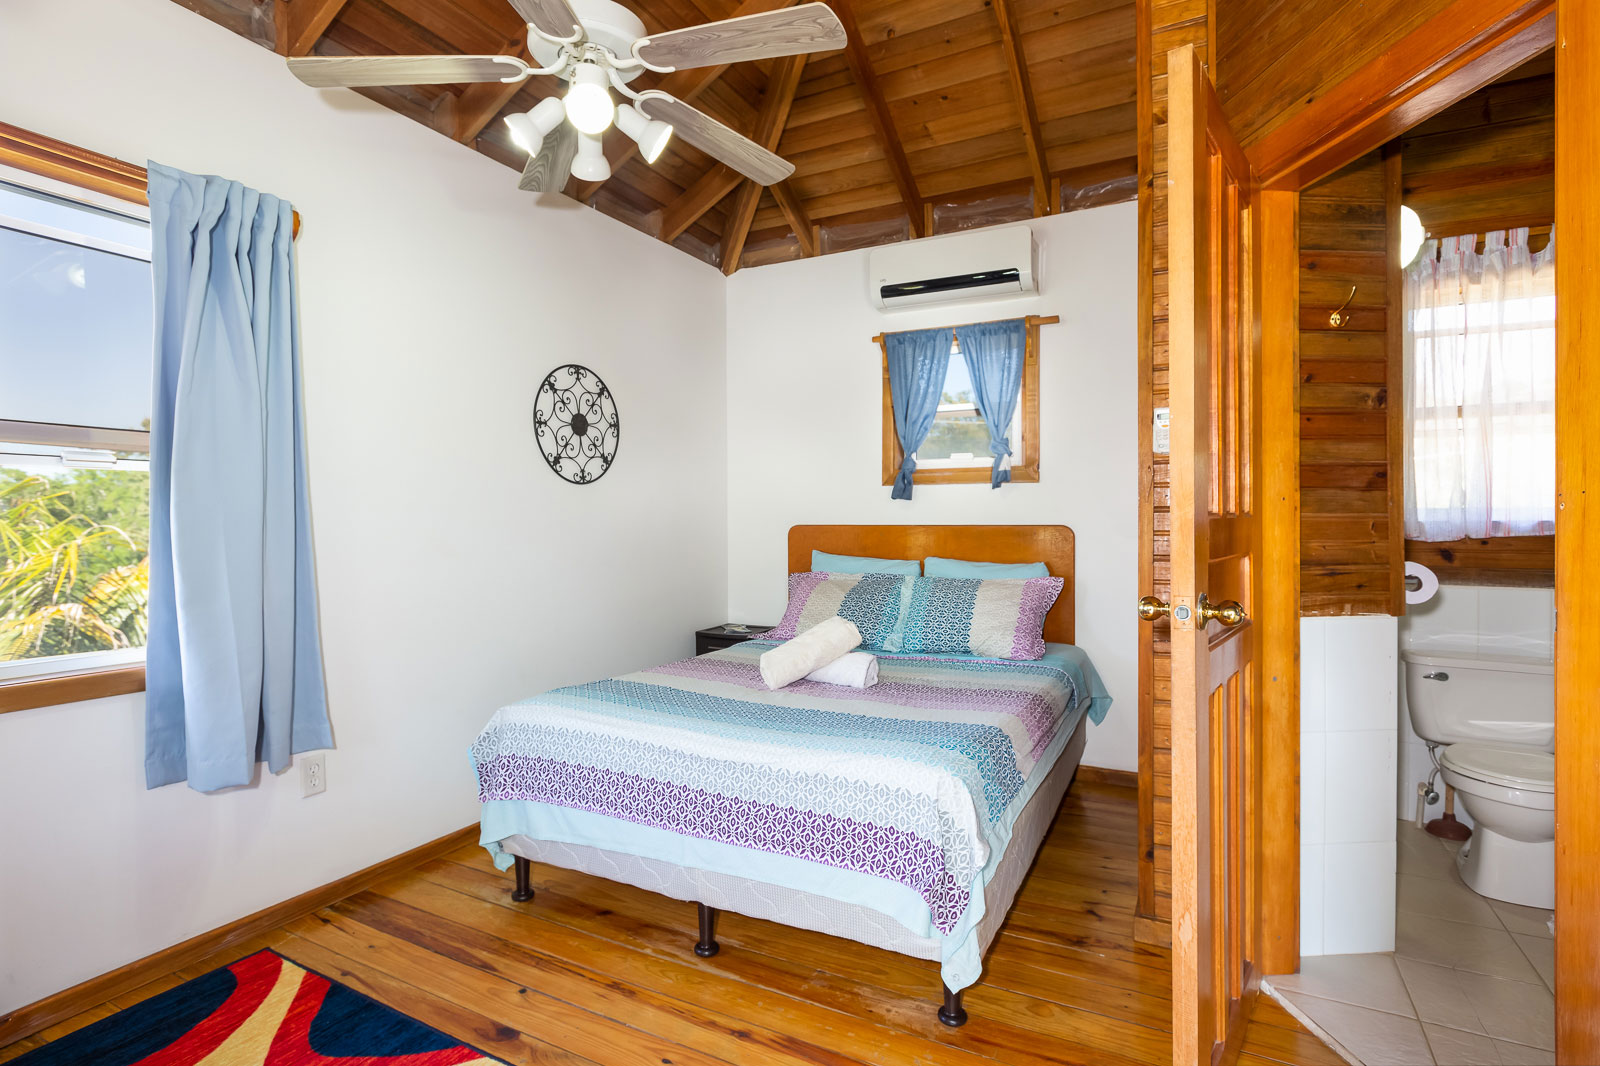 https://secureservercdn.net/166.62.111.174/170.2f8.myftpupload.com/wp-content/uploads/2020/02/places-to-stay-in-roatan.jpg?time=1606269874